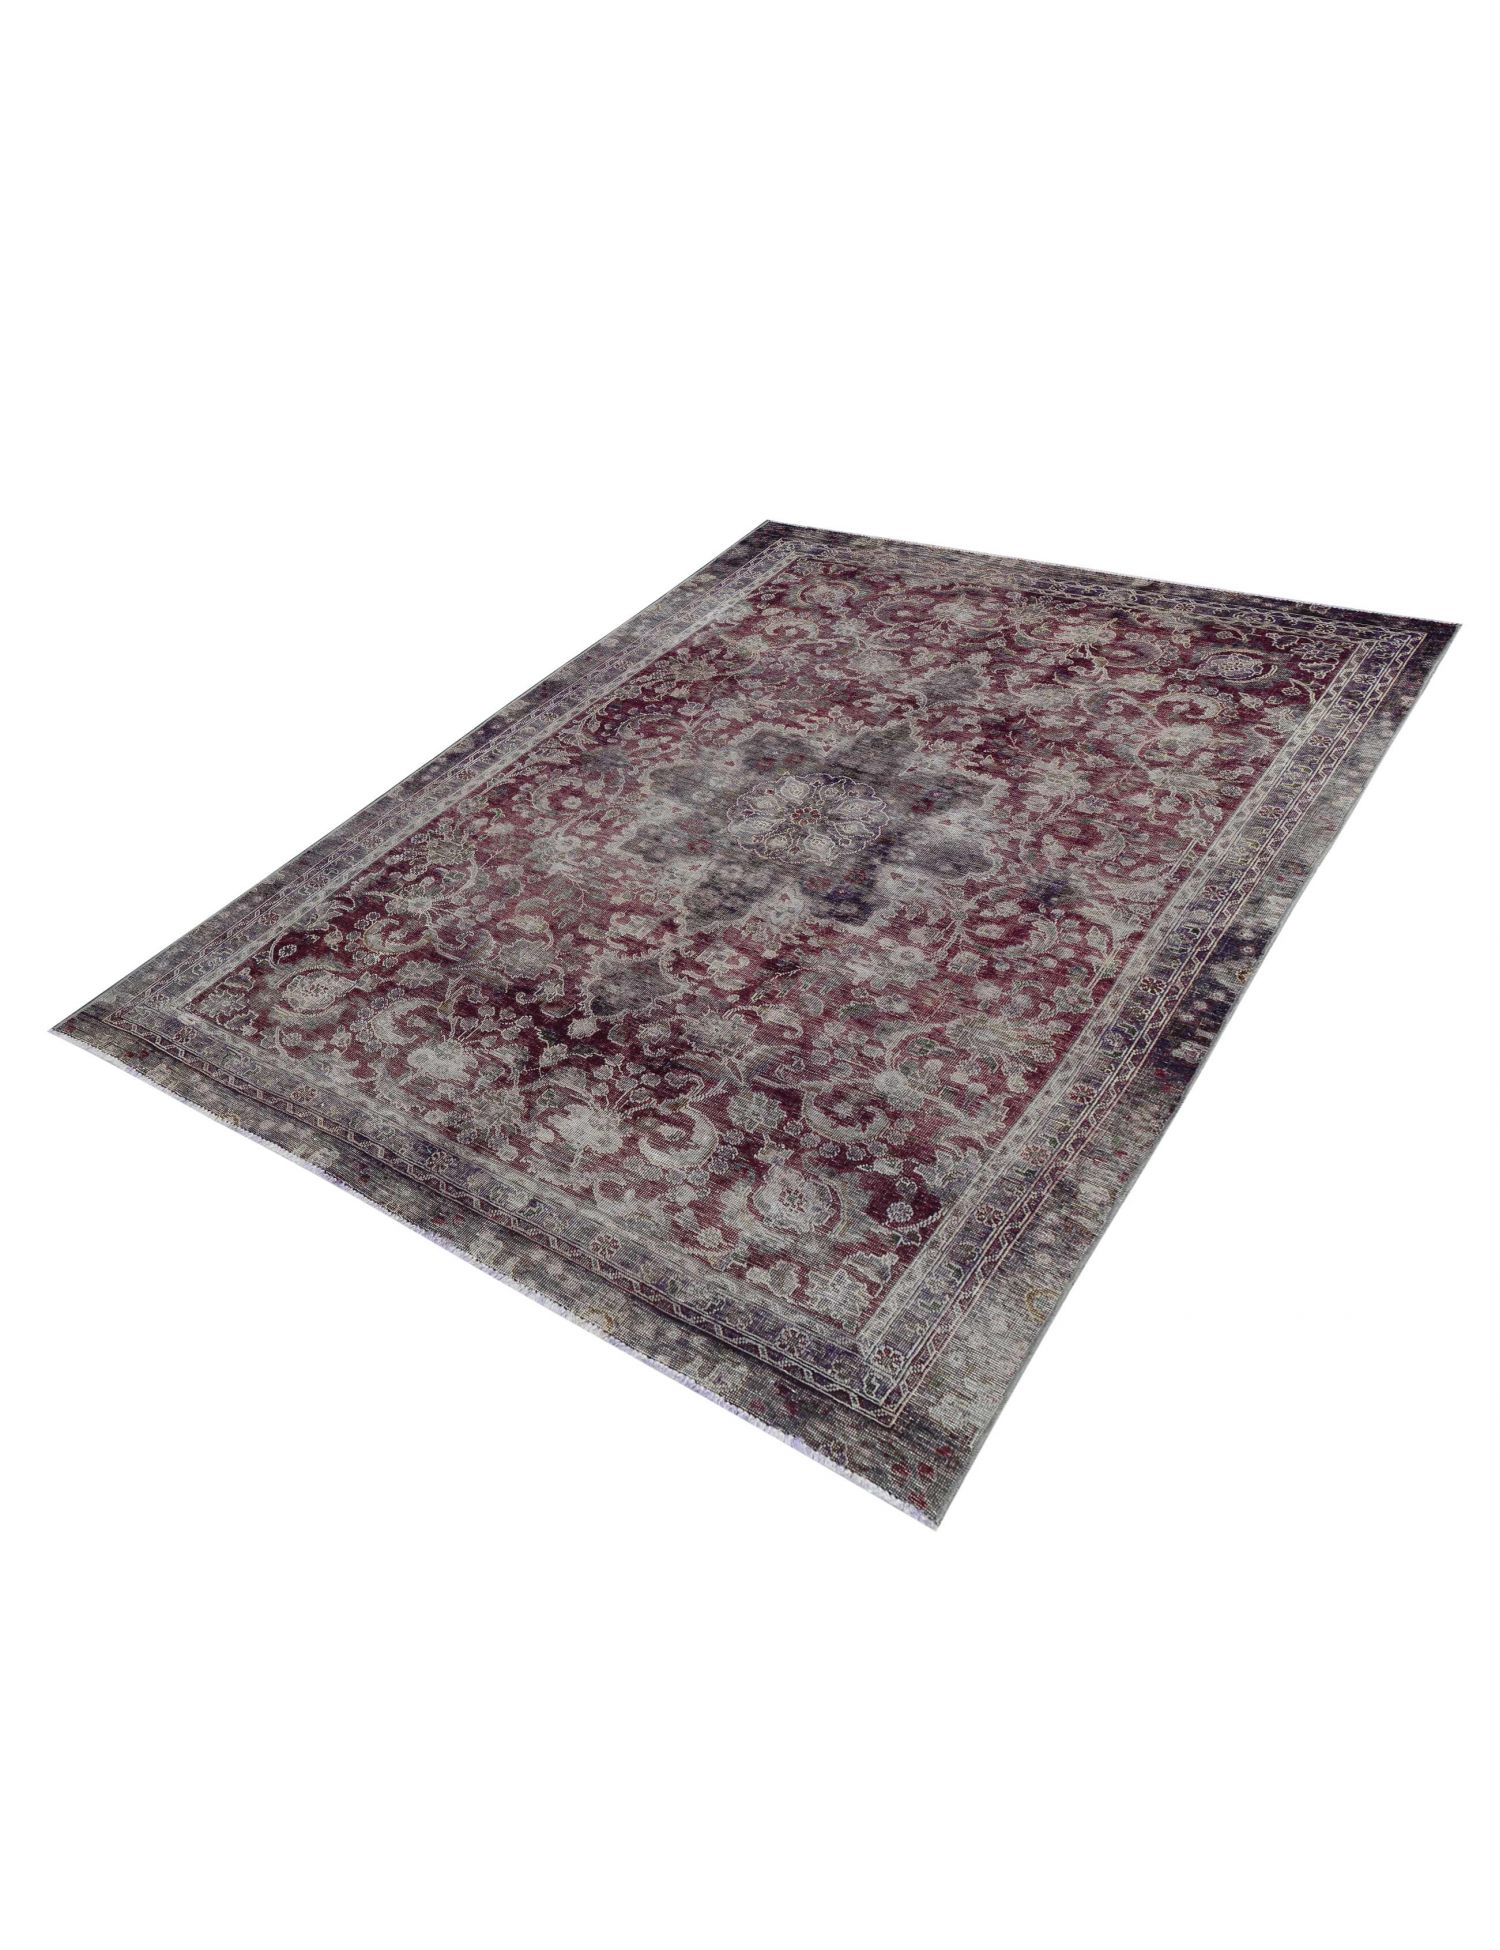 Vintage Carpet  purple <br/>300 x 203 cm